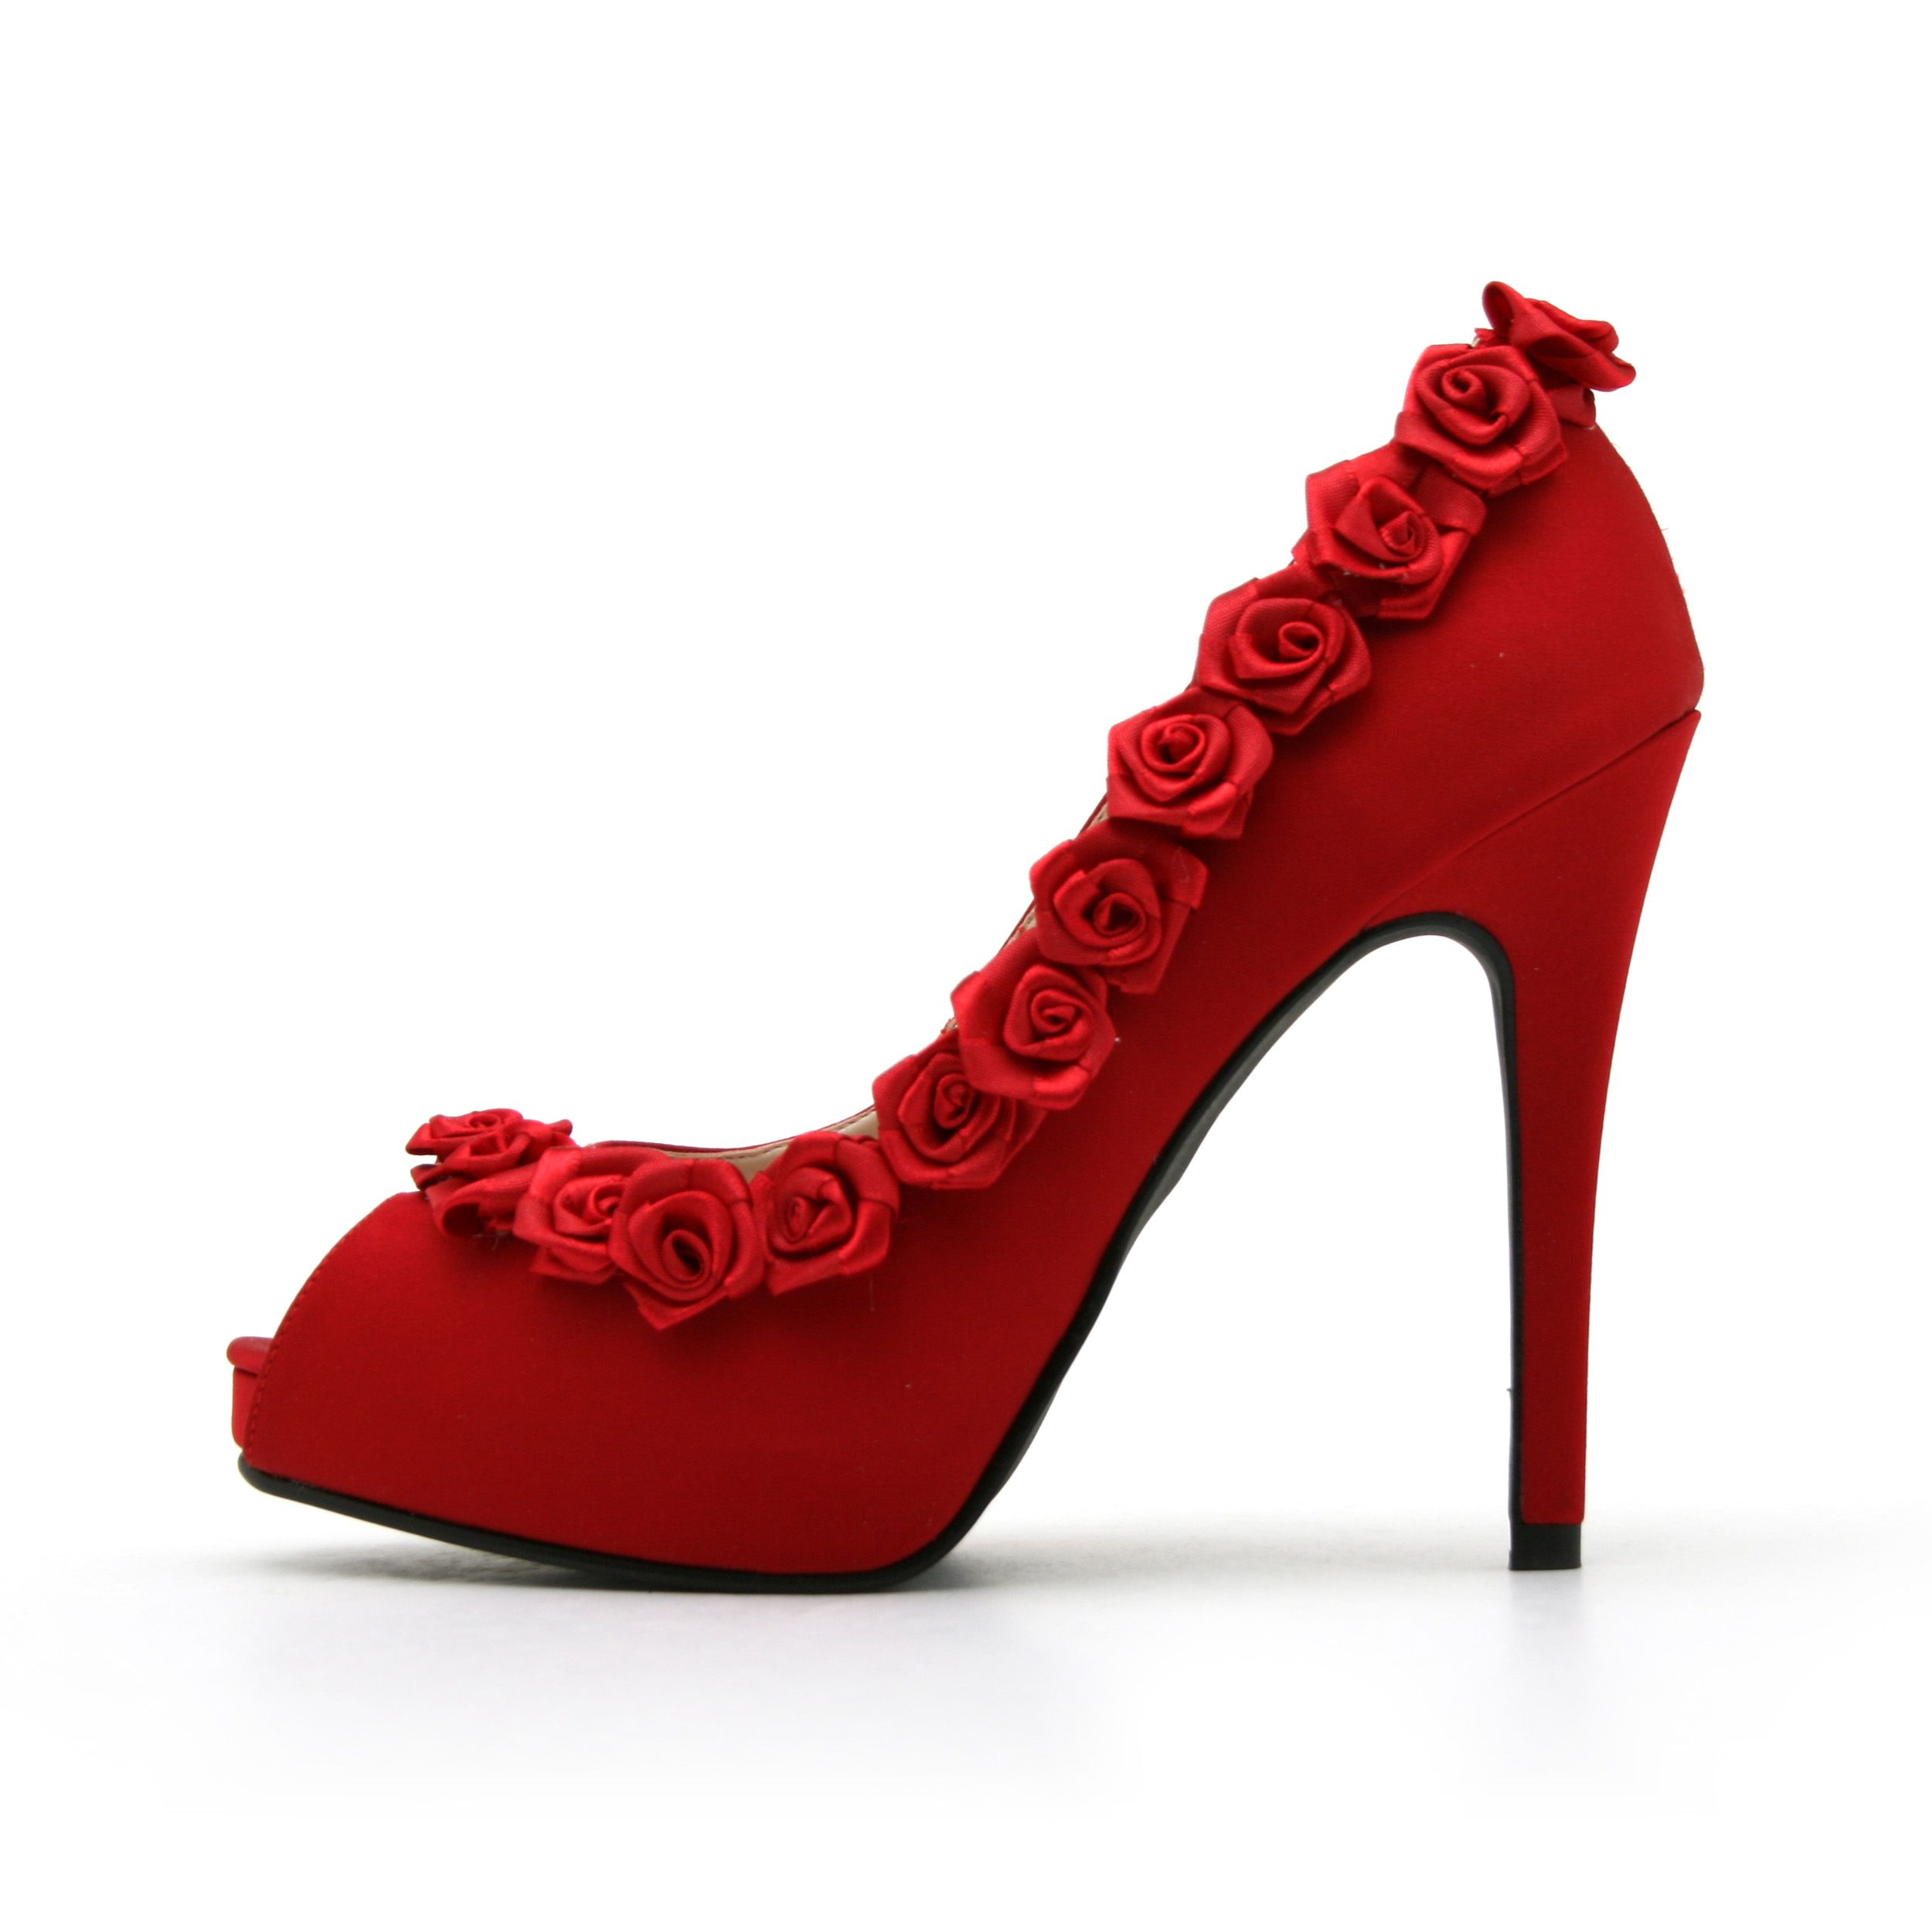 Red Wedding Shoes with Roses